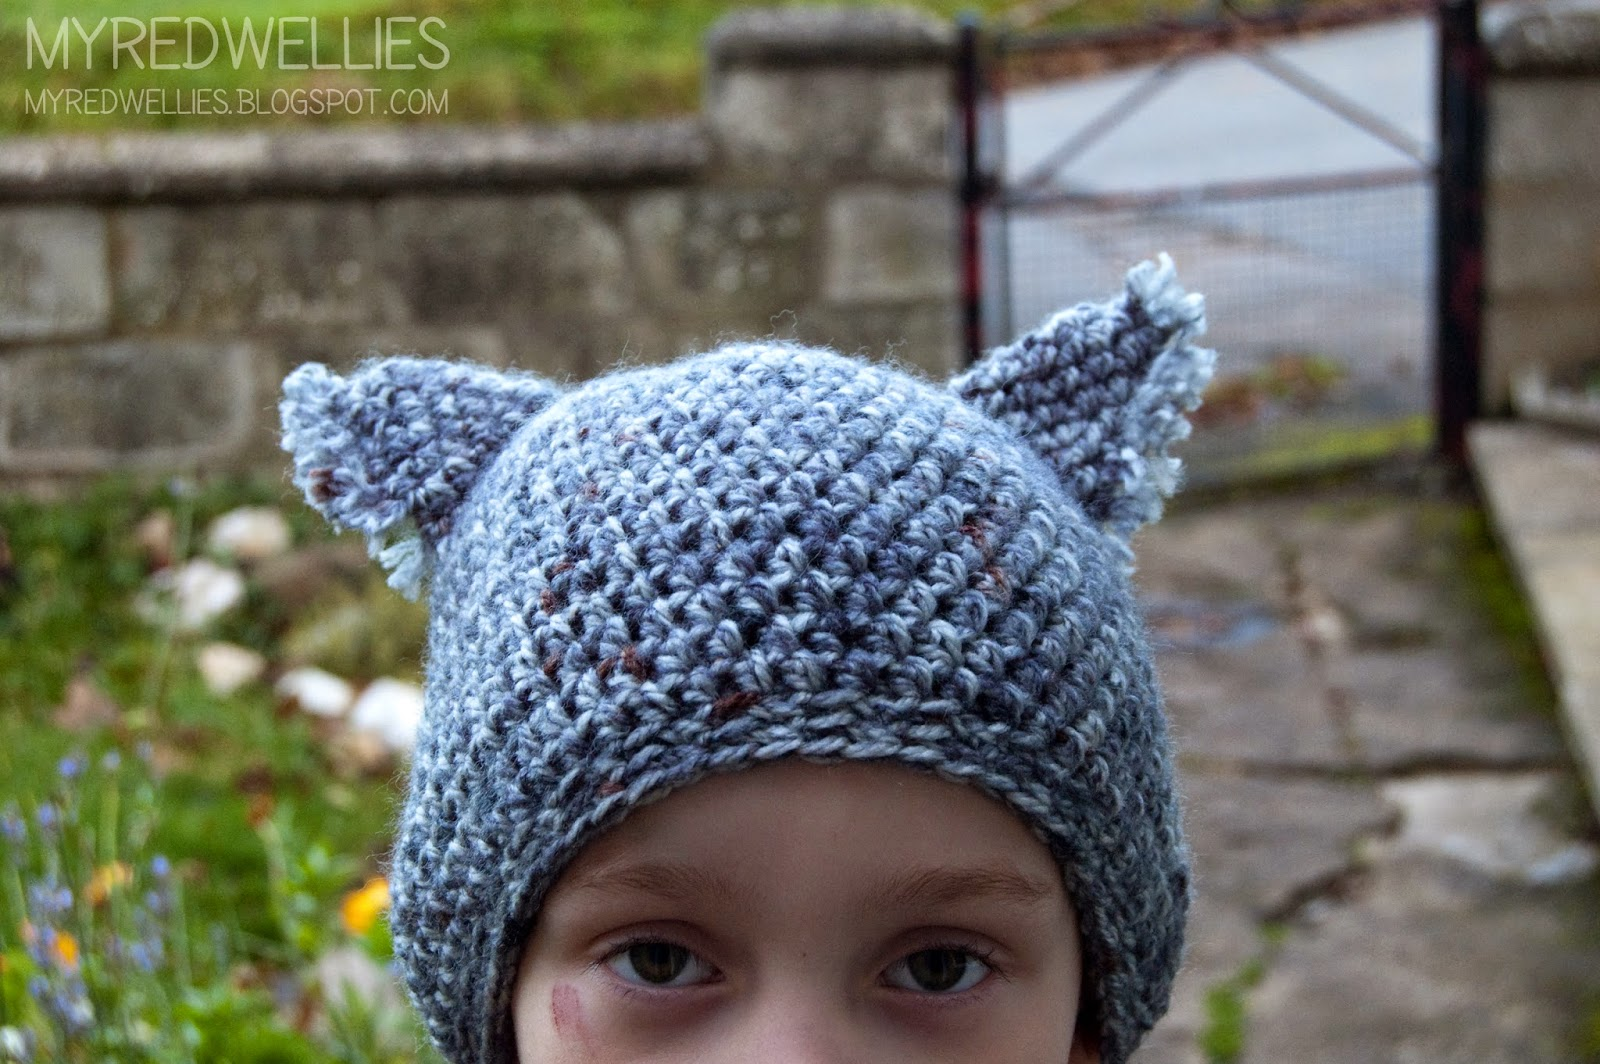 My Red Wellies: Wolf hat, simple yet cute. A free pattern